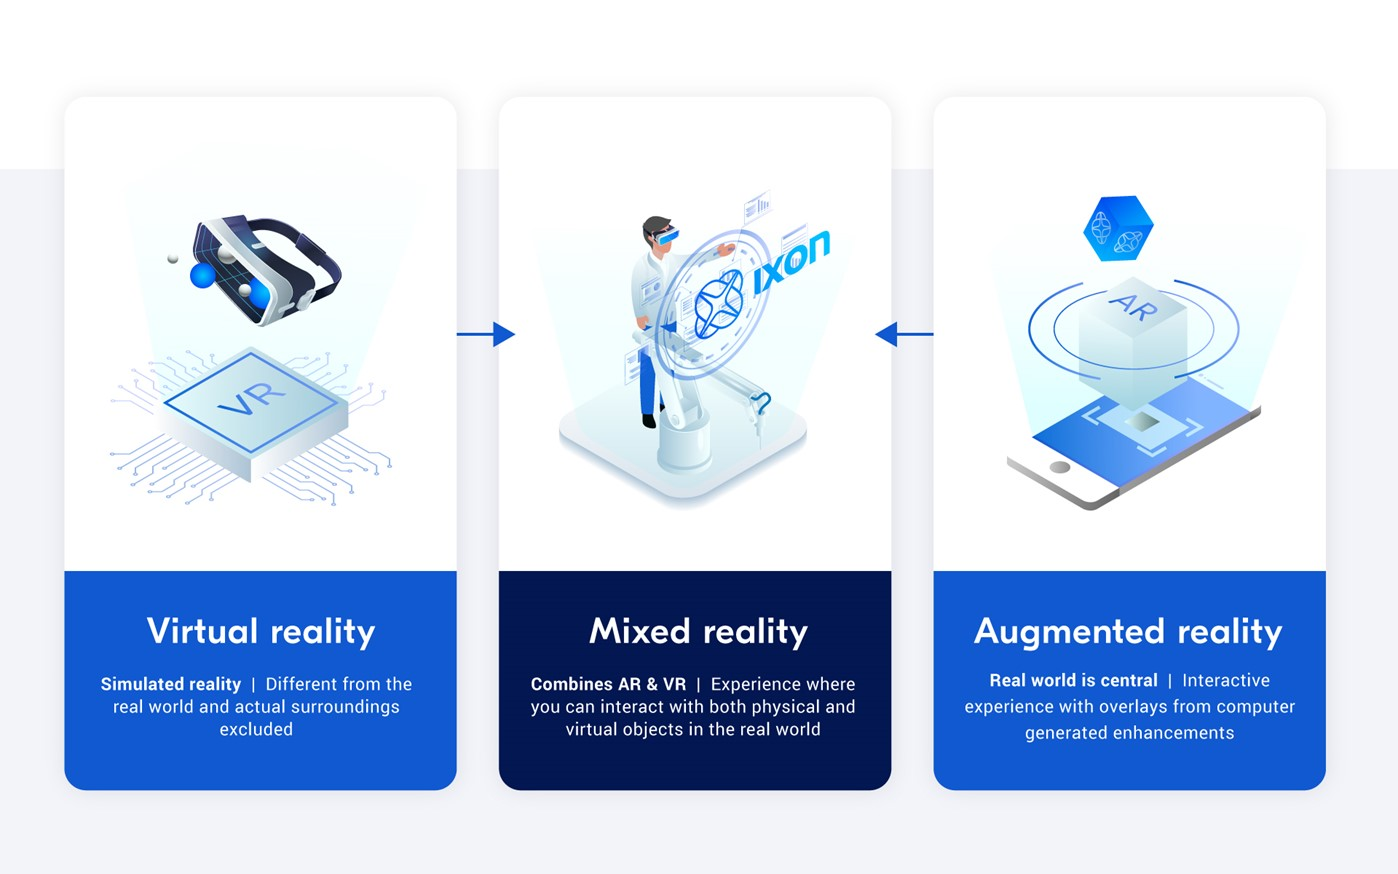 The difference between virtual reality (VR), augmented reality (AR) and mixed reality (MR).